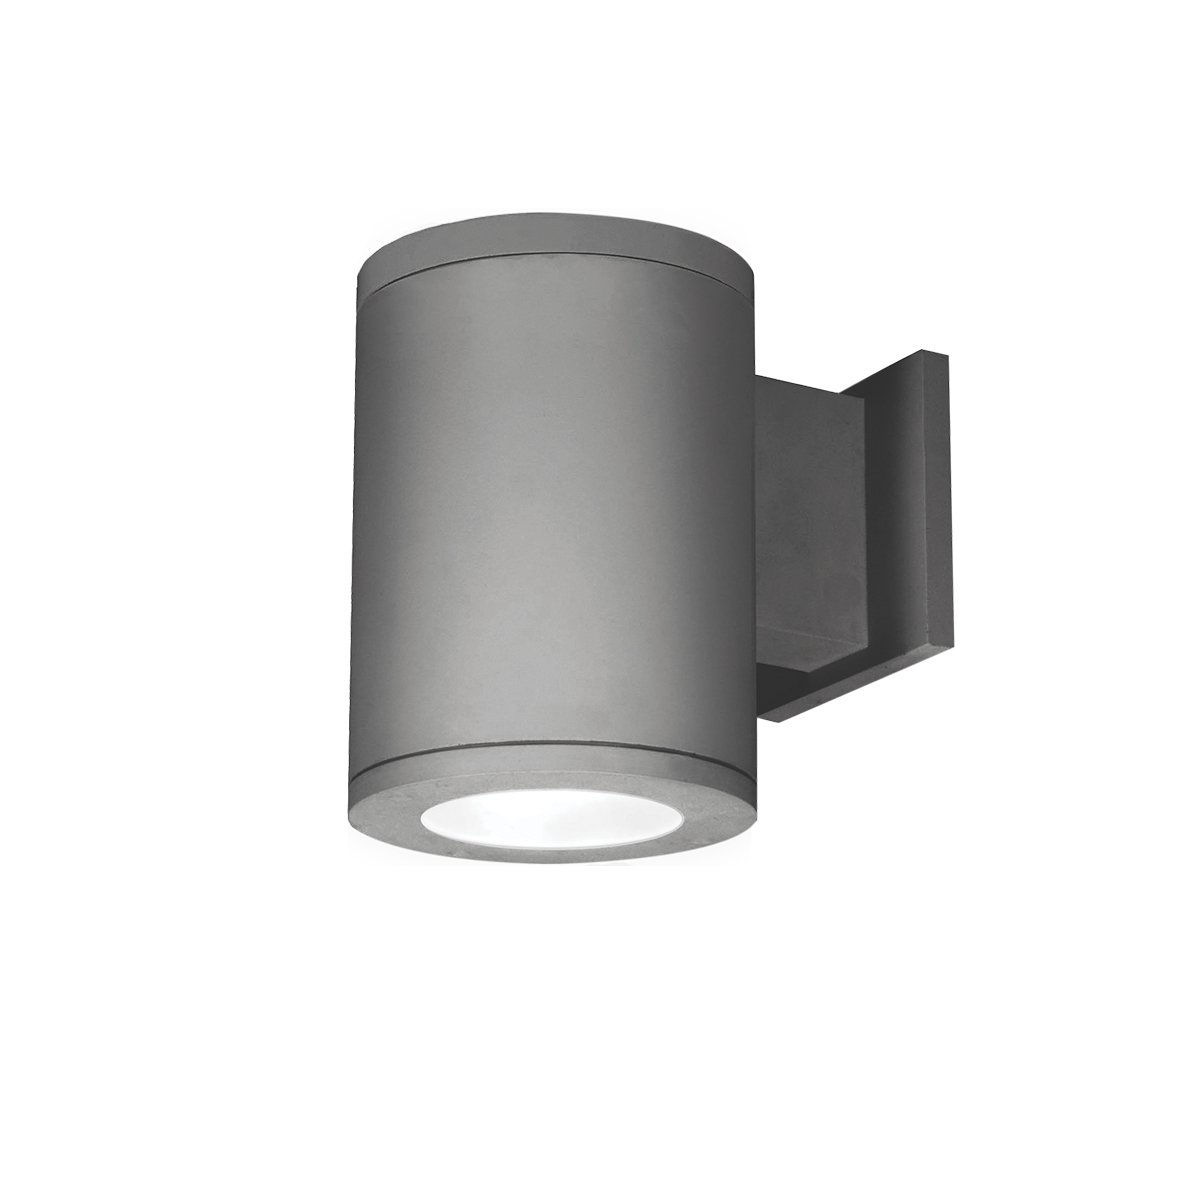 WAC Lighting DS-WS05-F40S-GH Tube Architectural 5 LED Wall Light Straight Flood Beam 4000K in Graphite Single